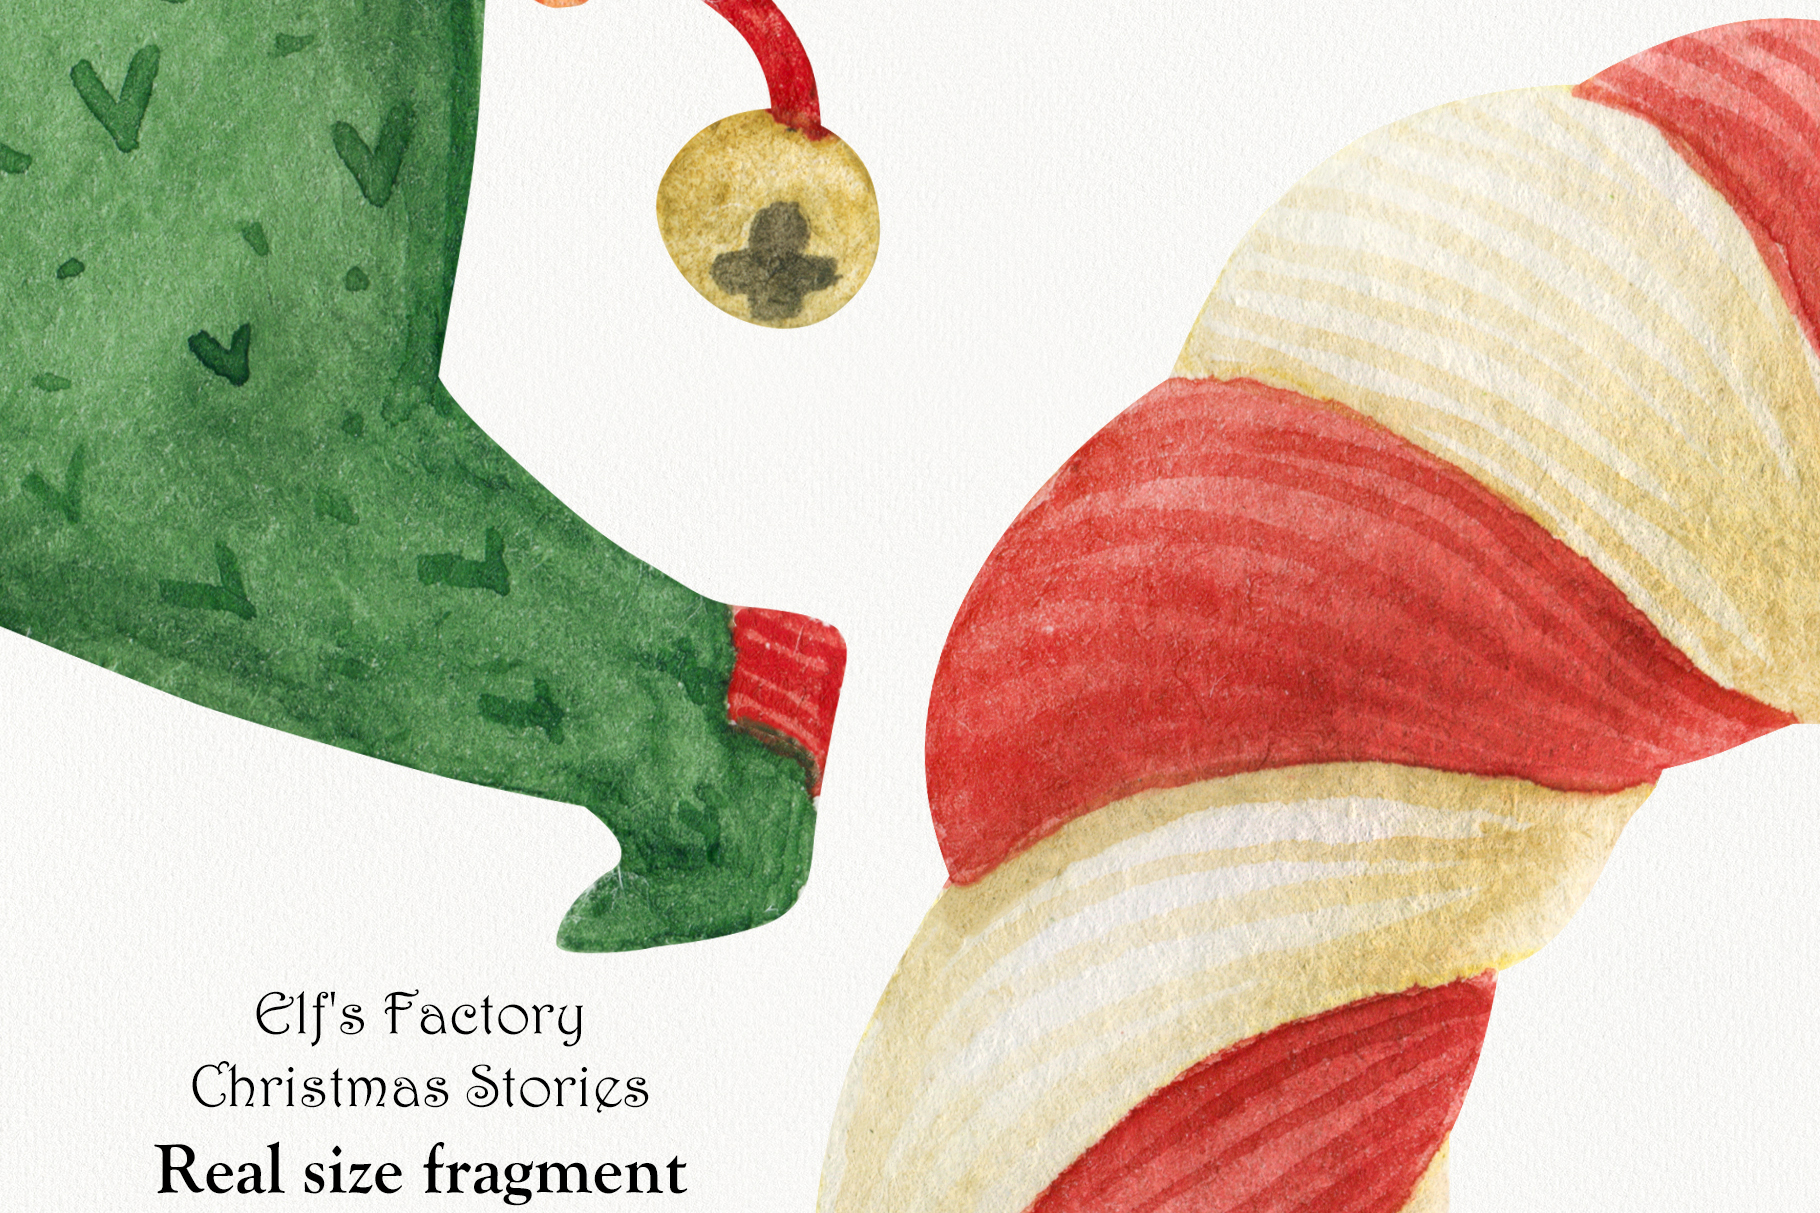 Elf's Factory Christmas Stories example image 5